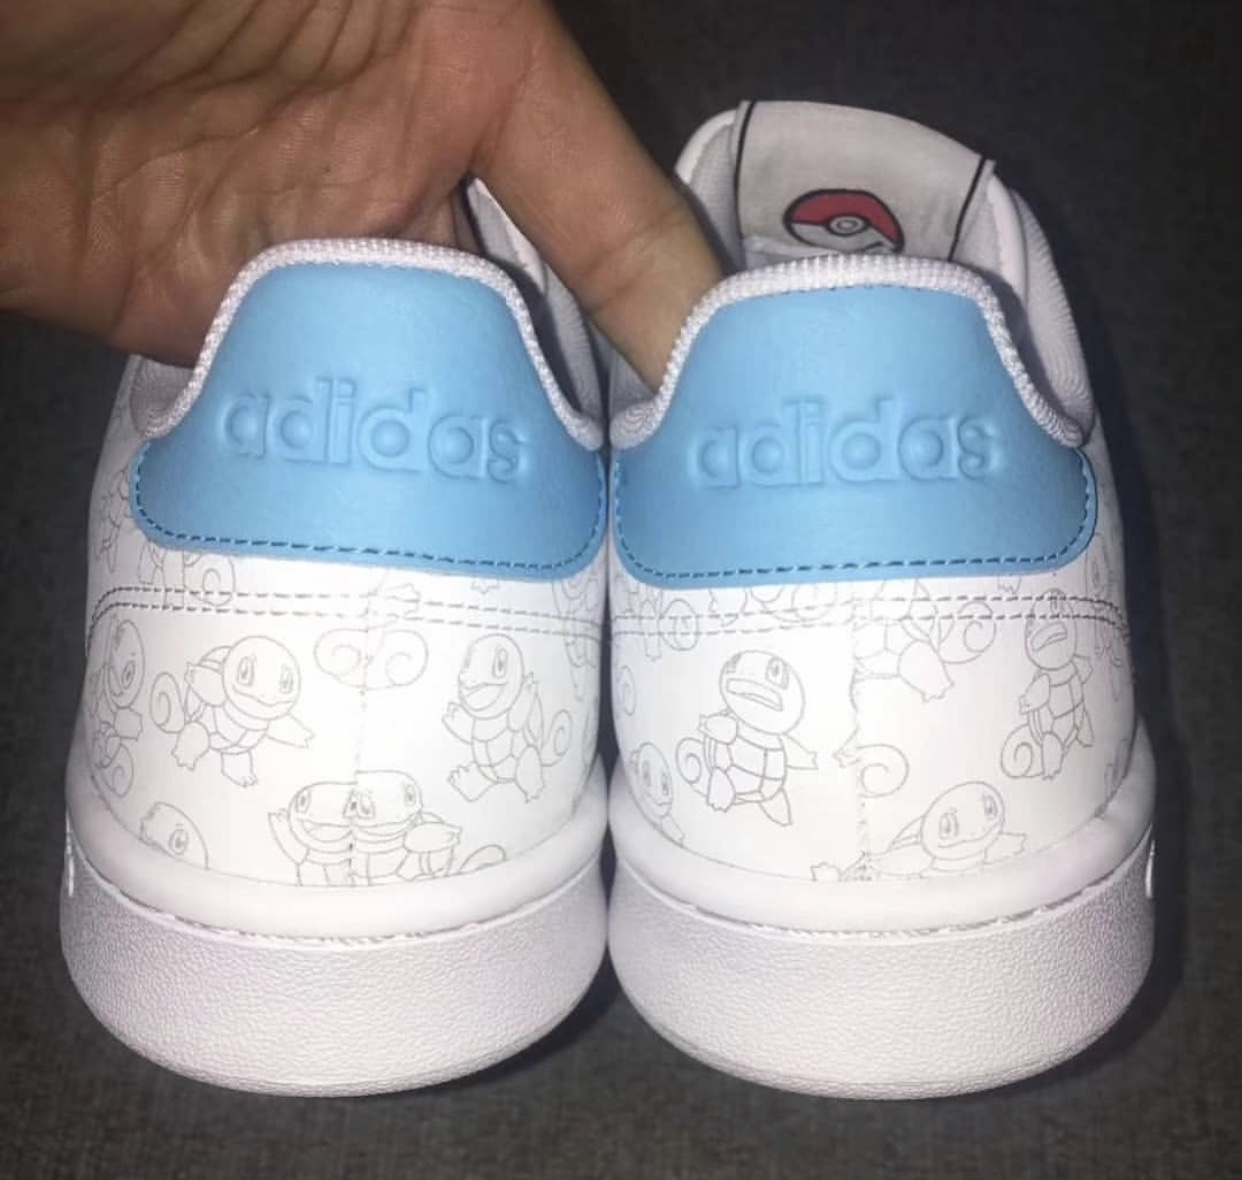 Pokemon adidas Squirtle Release Date